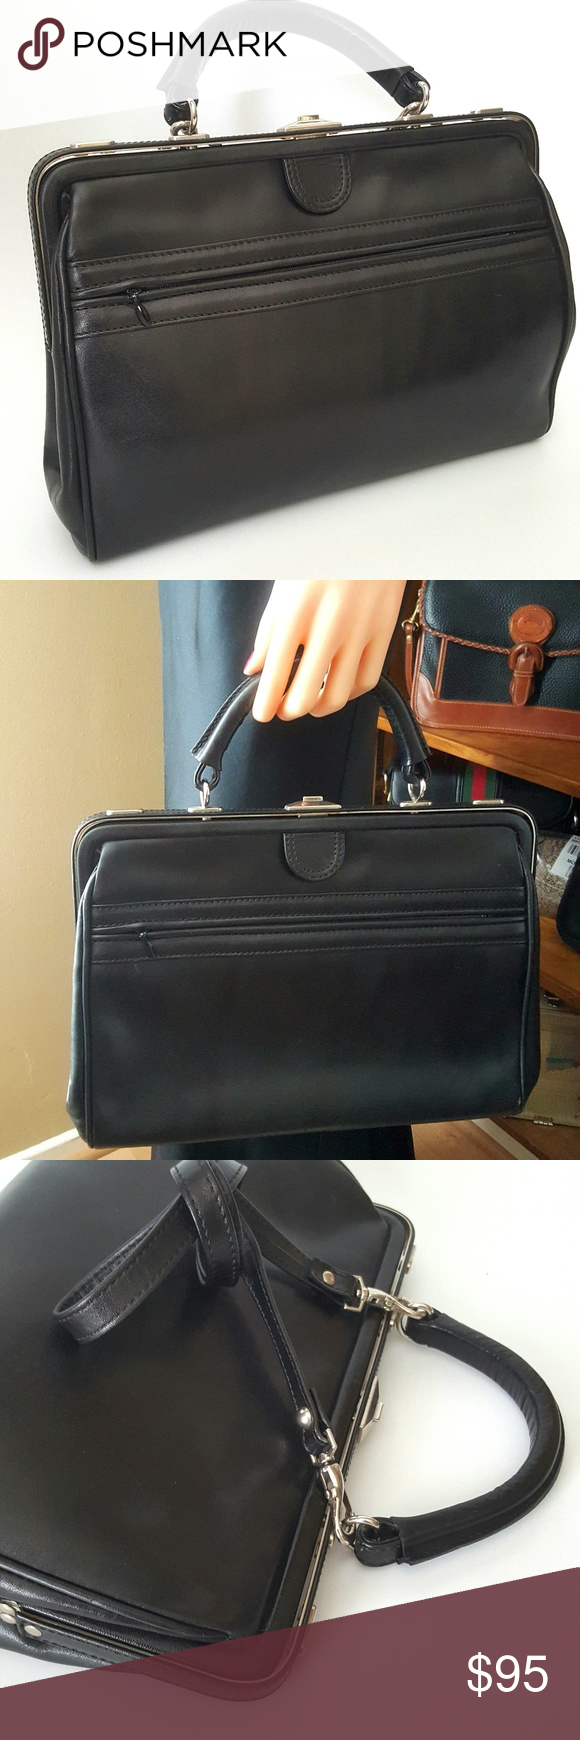 Vintage 1960 S Star Modell Black Leather Handbag Very Good To Excellent Condition Minimal Superficial